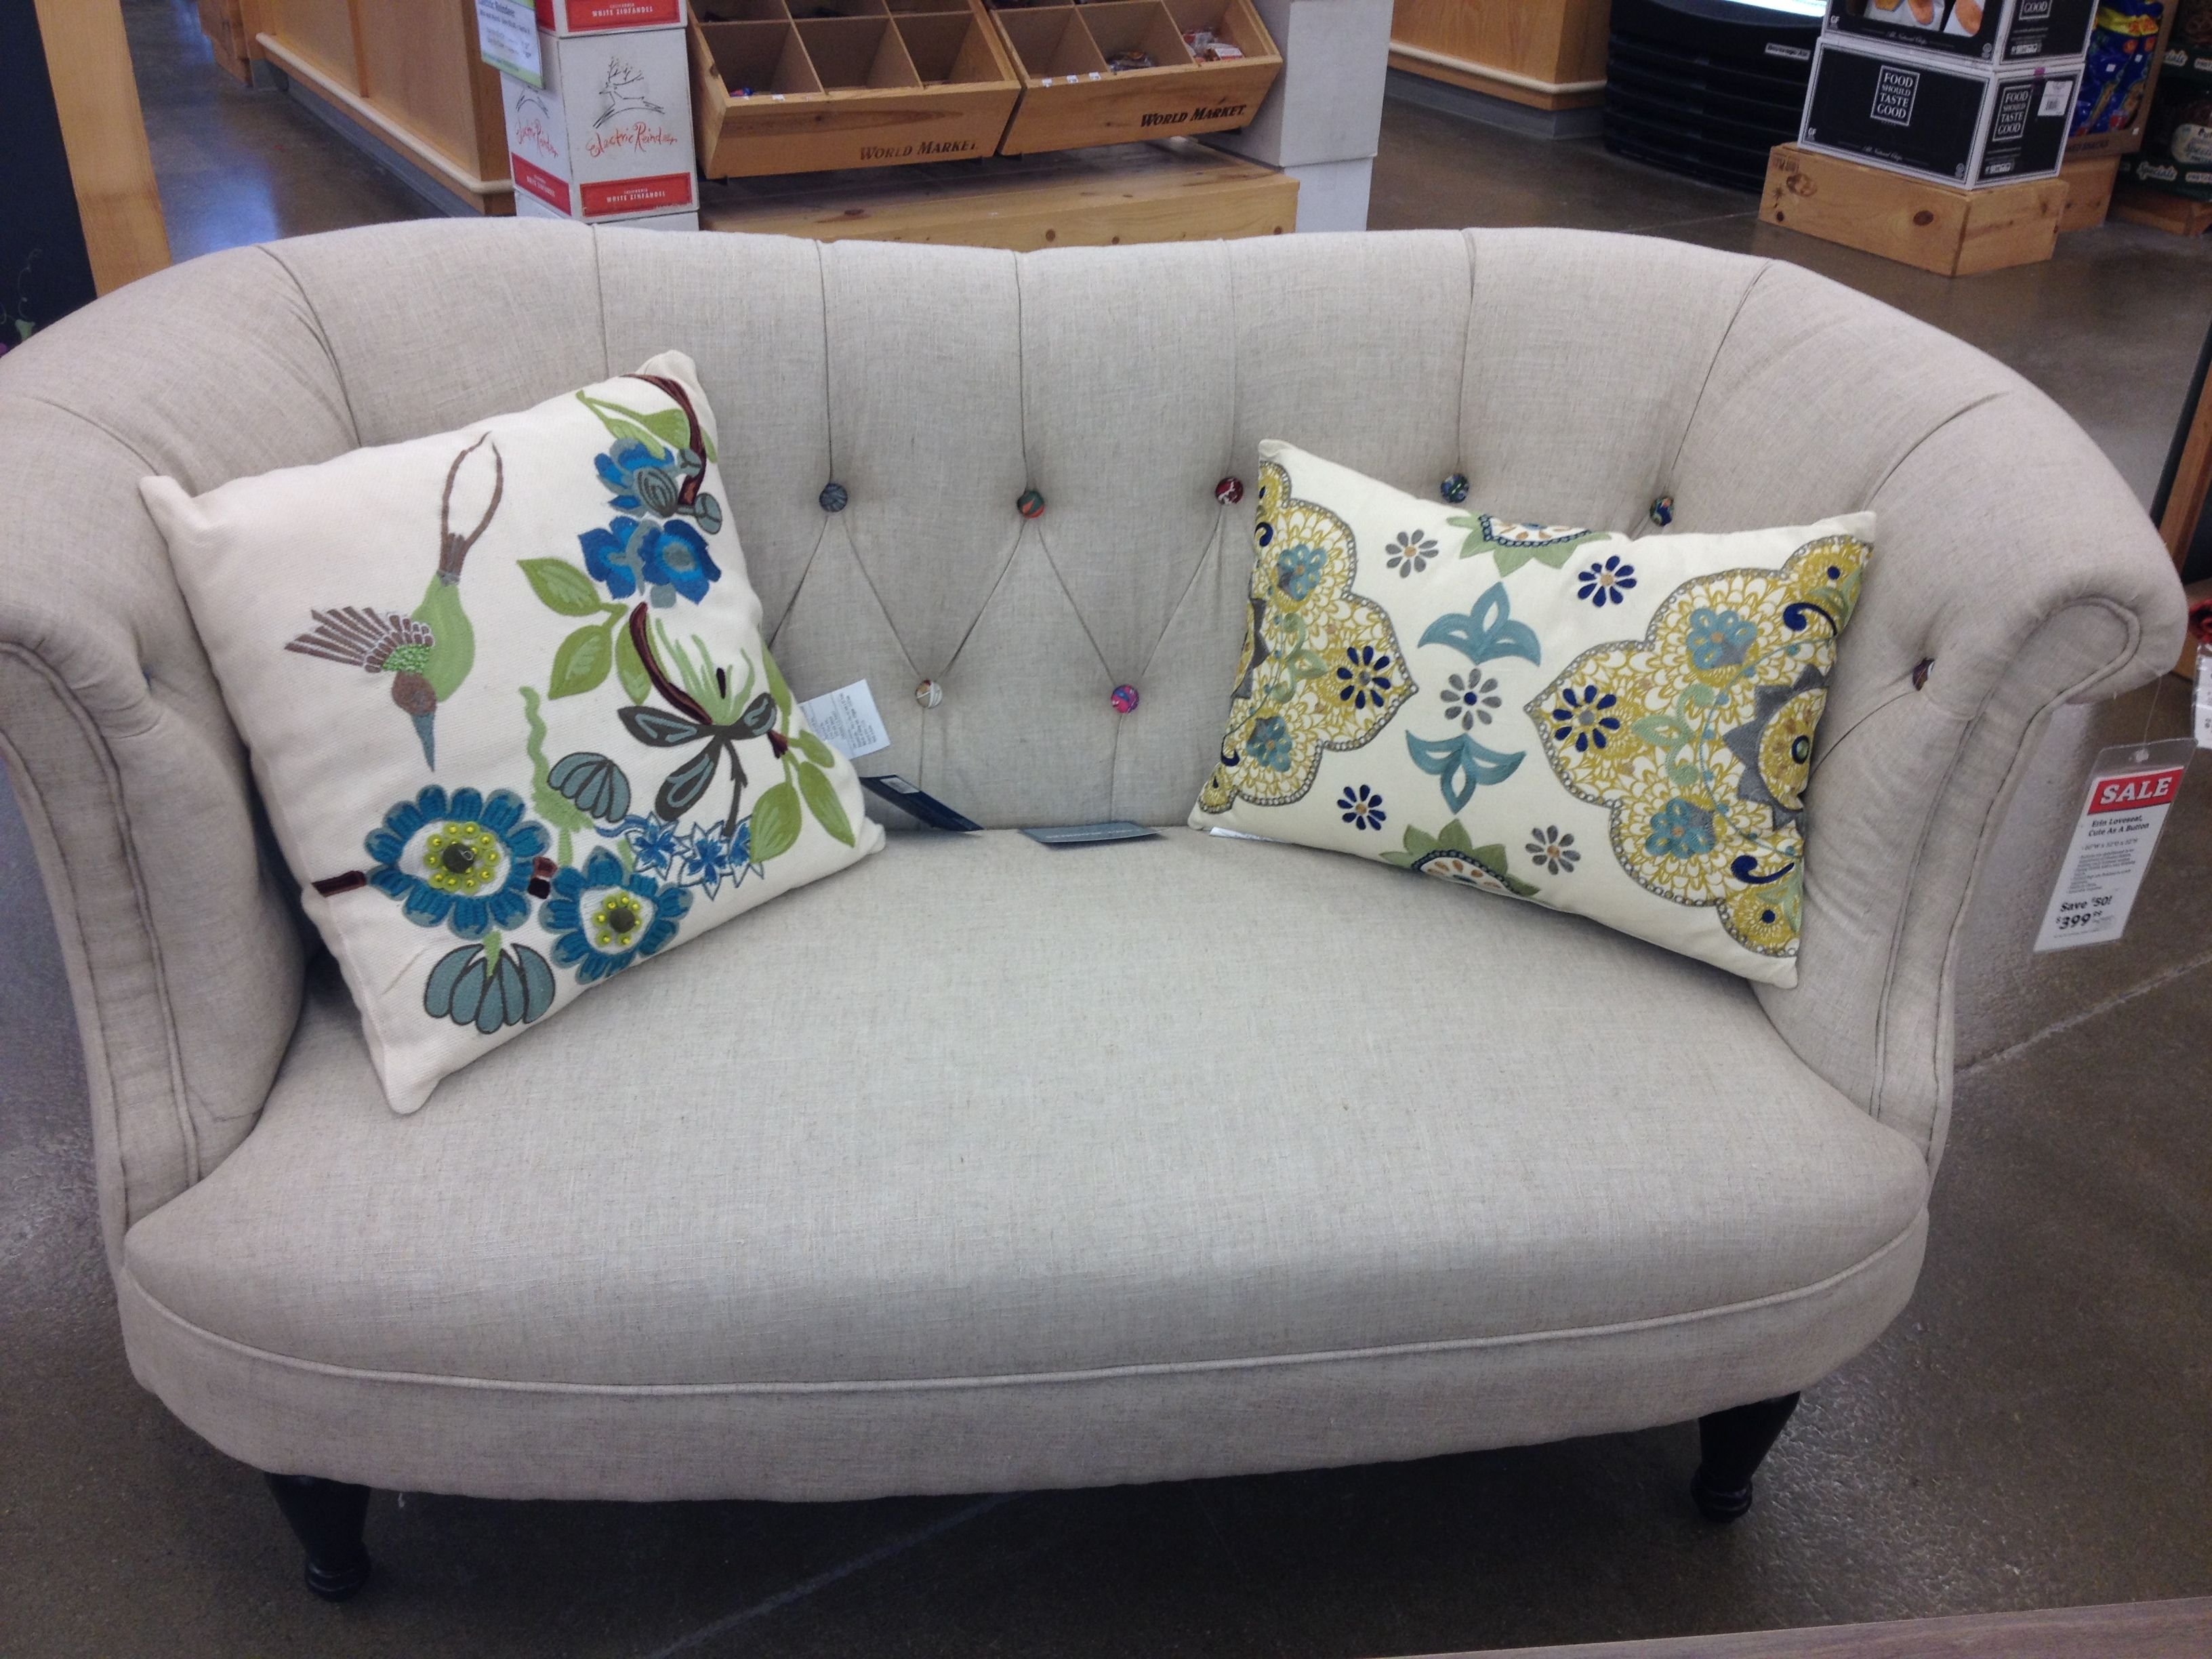 World market couch. Each of the buttons have a different design, so it practically matches with anything.